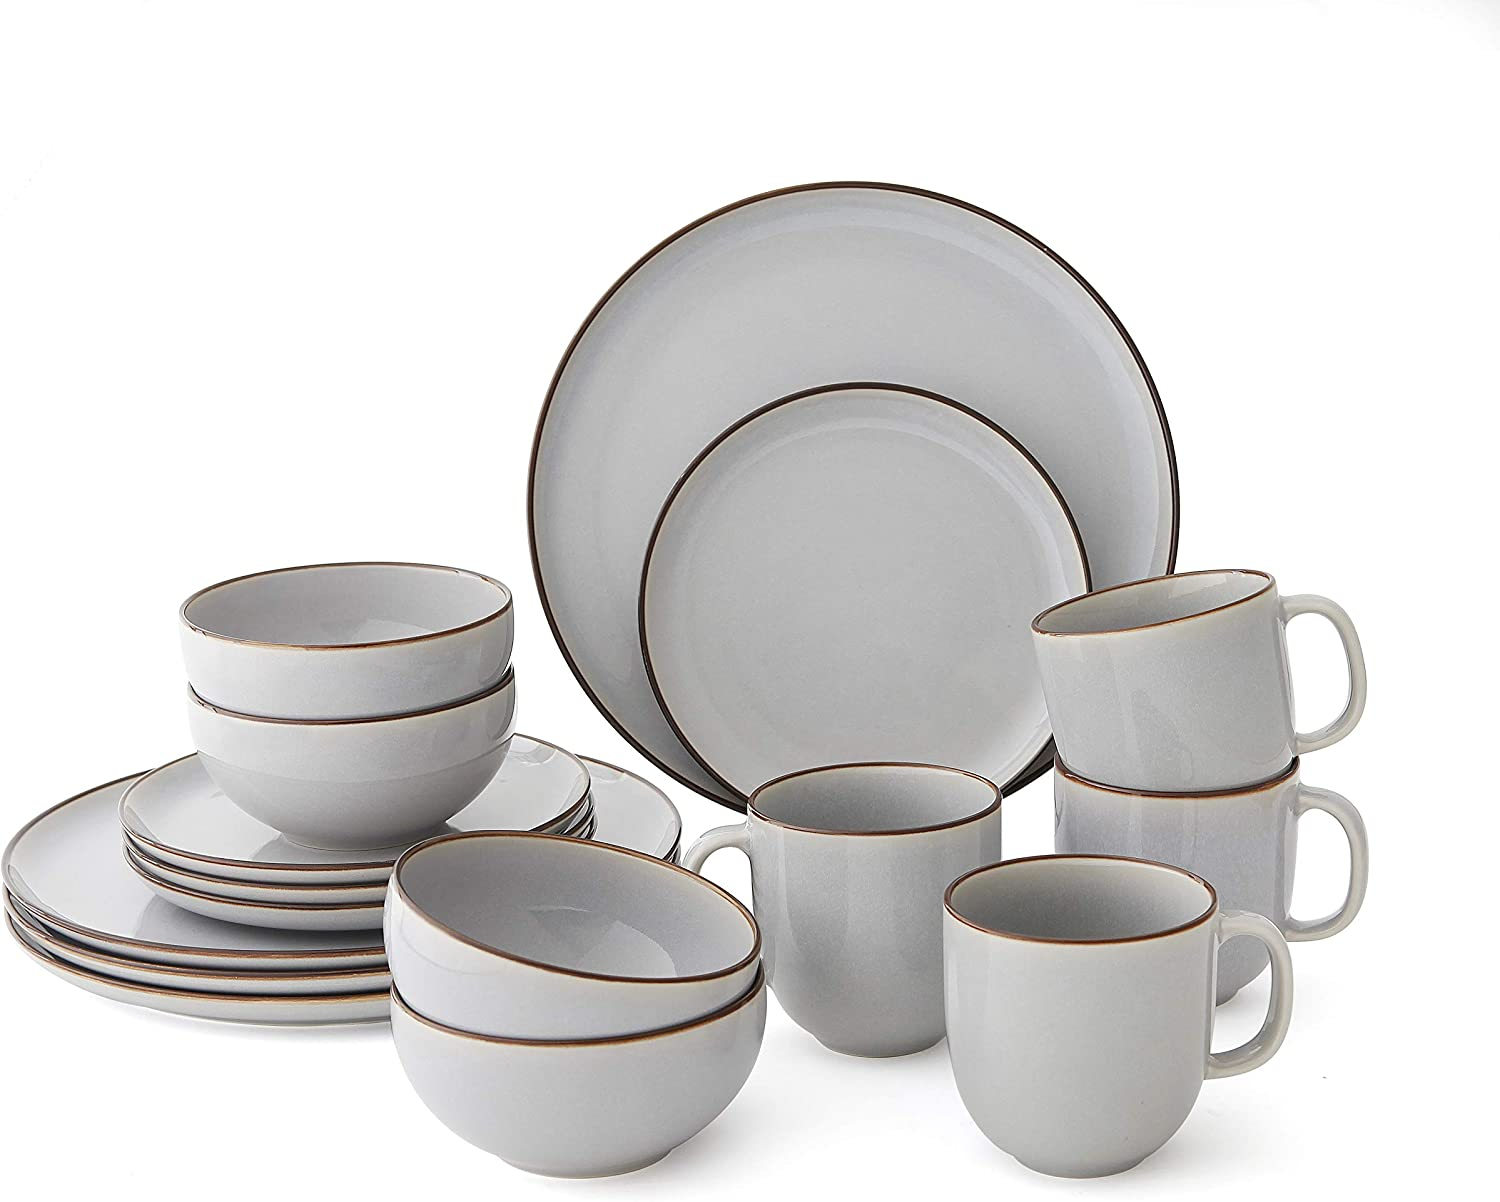 ARTIZEN Color Glazed Fine Stone 16-Piece Dinnerware Set, Service For 4 (GRAY) Gray